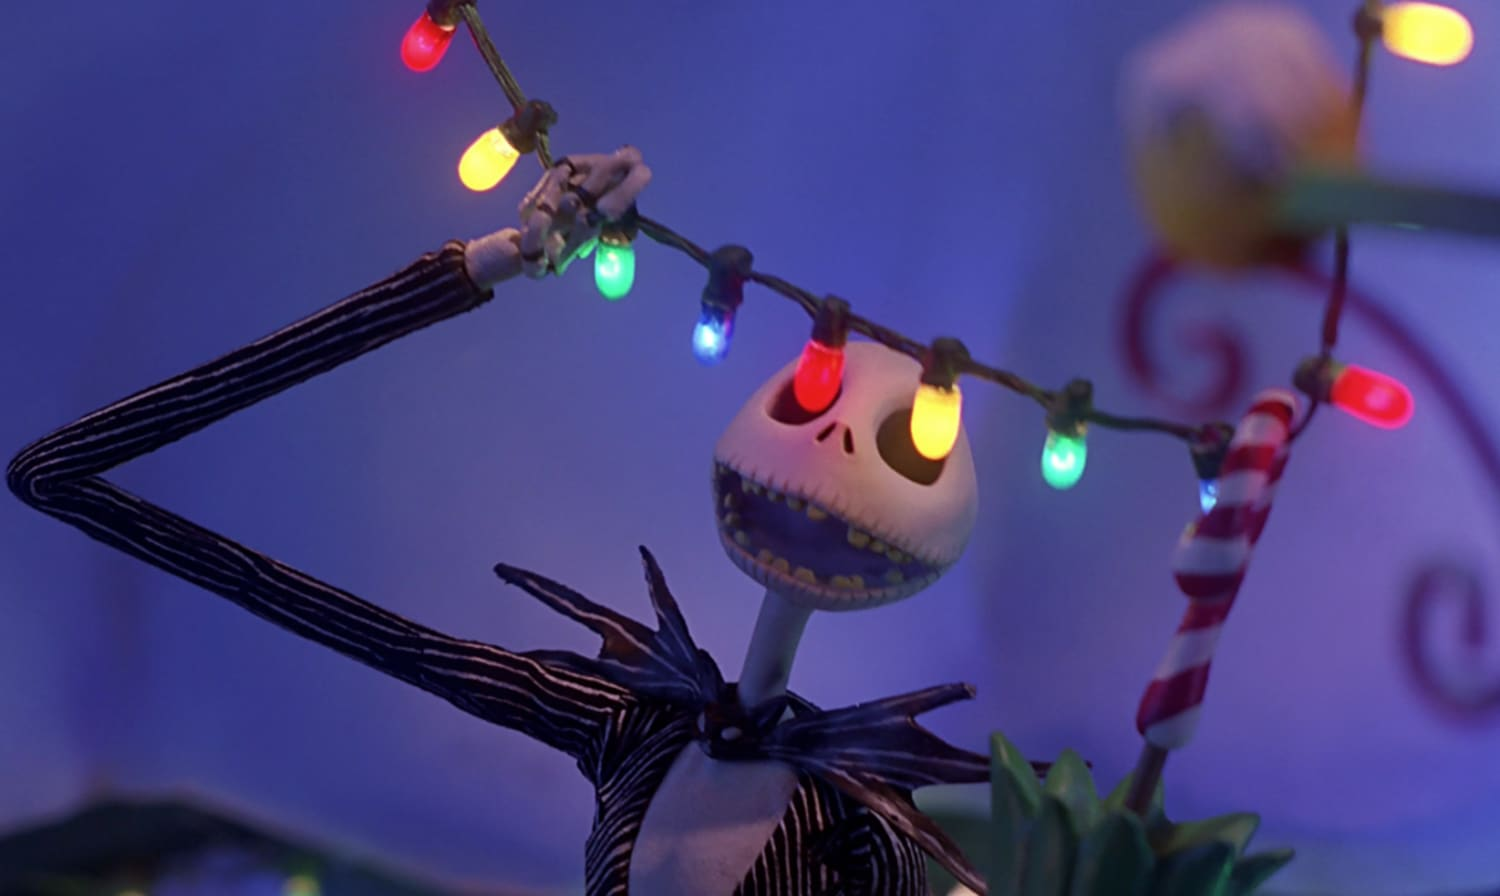 What's This? Disney's New 'Nightmare Before Christmas' Home Decor Will Scary Up Your Space